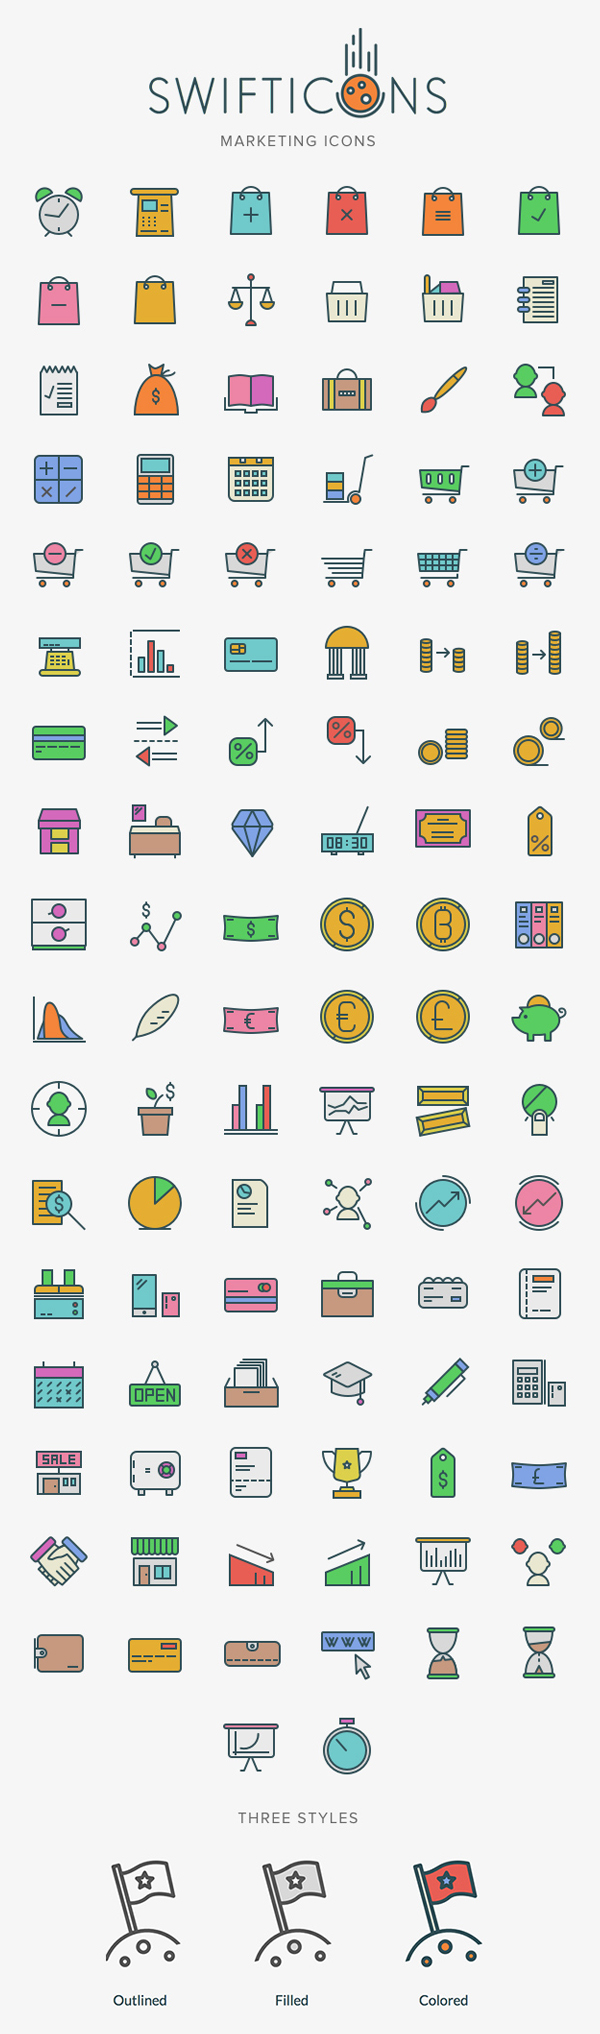 Free Marketing Icons - 100+ Icons